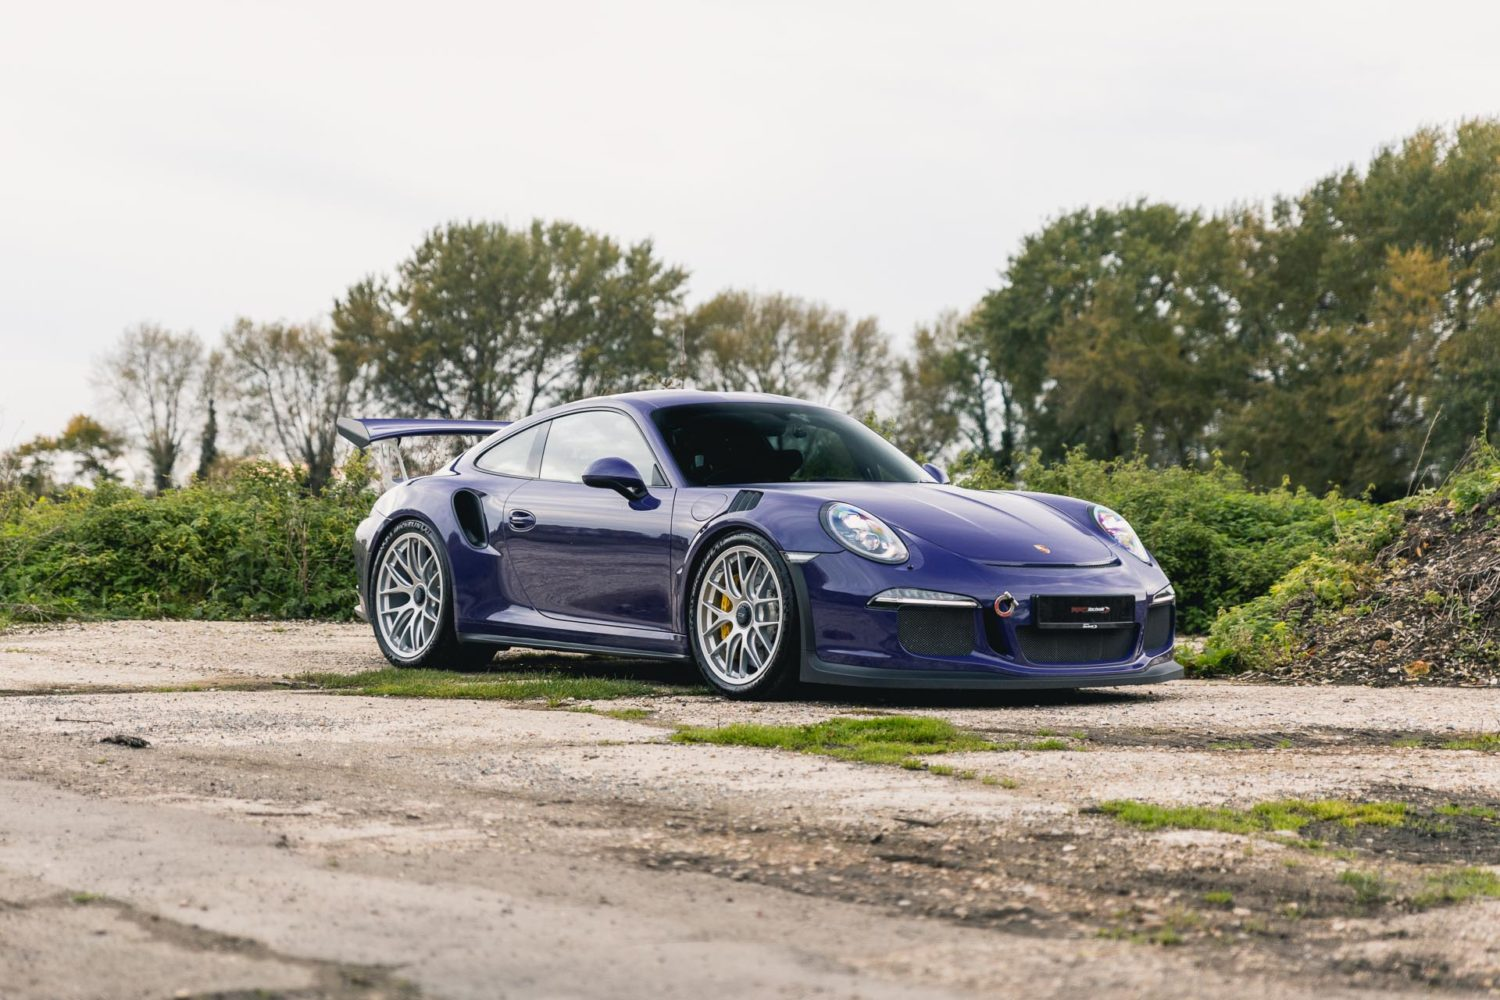 991.1 gt3rs parked outside